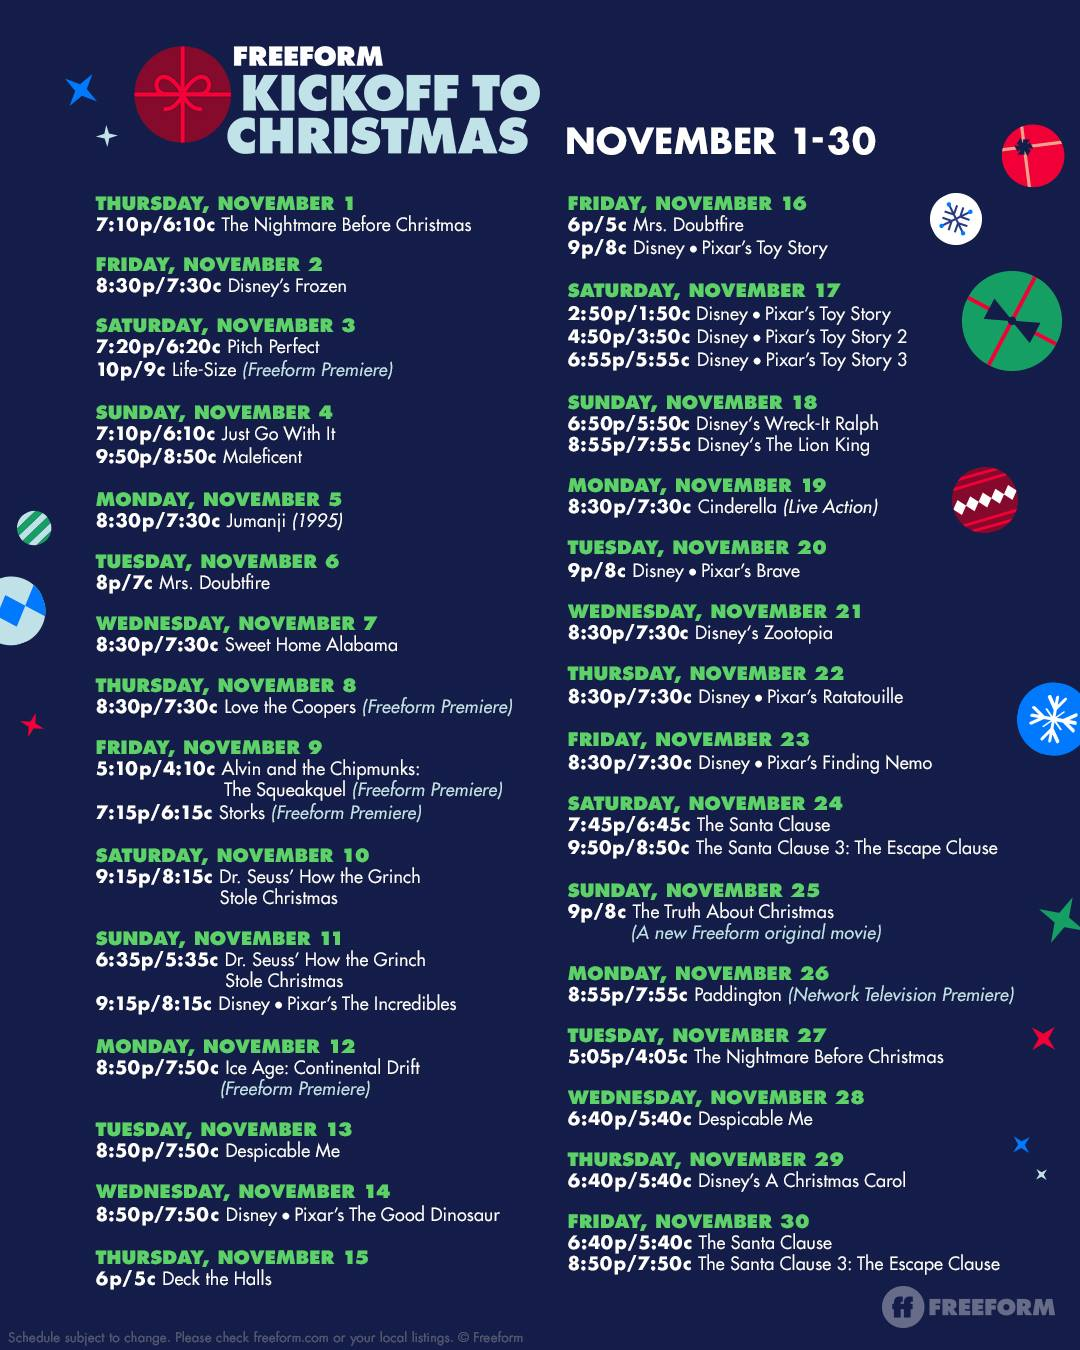 Freeform 2018 Kickoff to Christmas movies – Christmas movie Schedule